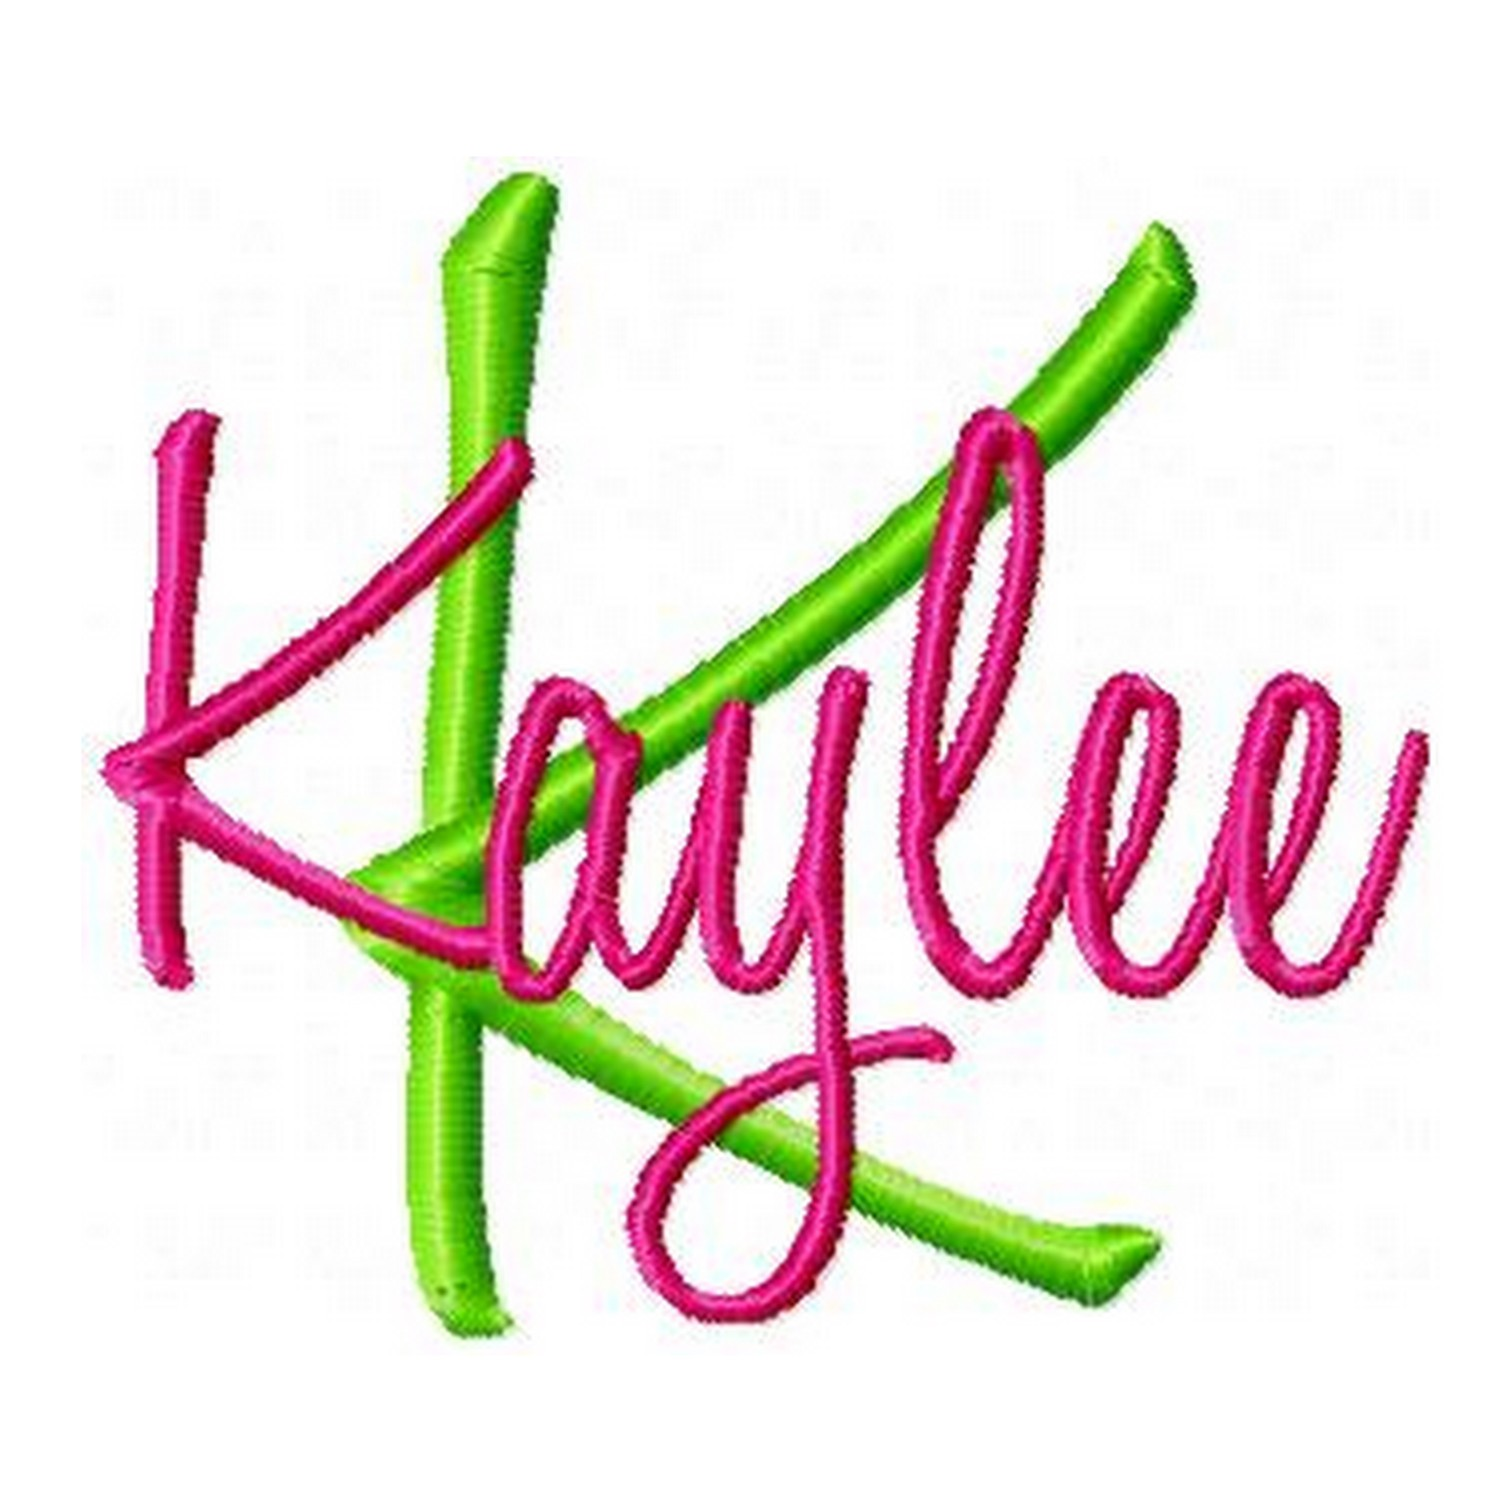 14 Kaylee Embroidery Font Images - Machine Embroidery